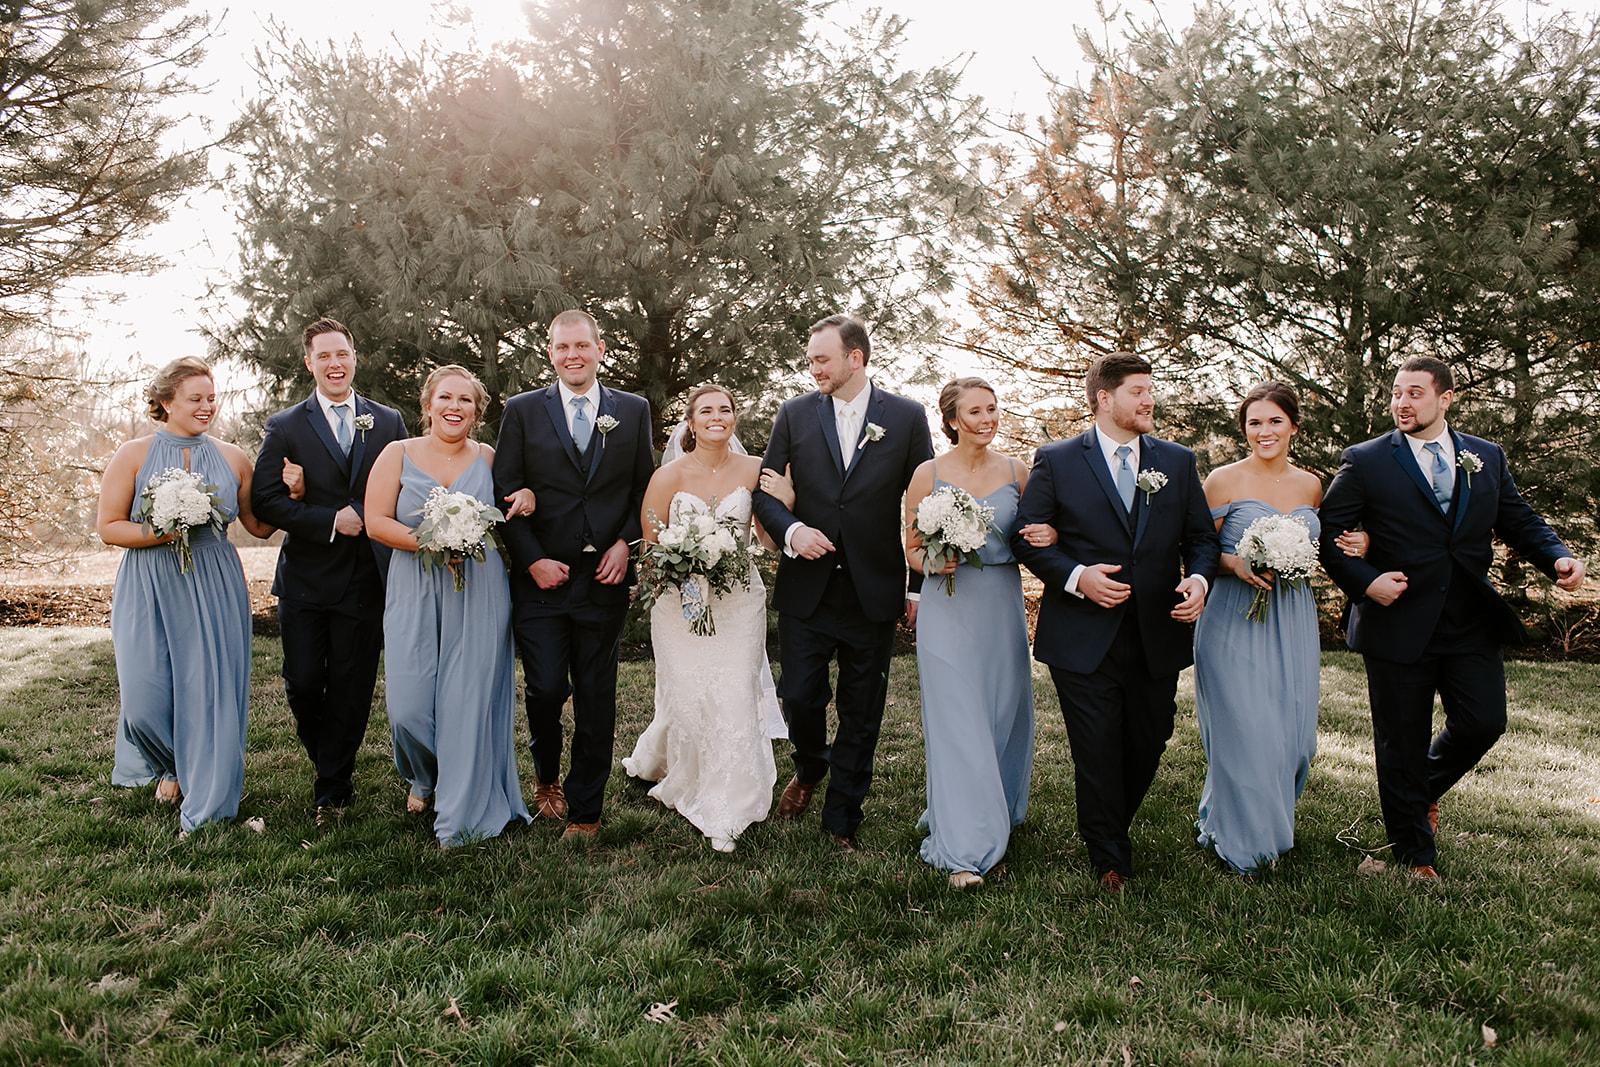 Lauren_and_Andrew_Mustard_Seed_Gardens_Noblesville_Indiana_by_Emily_Wehner_Photography-641.jpg